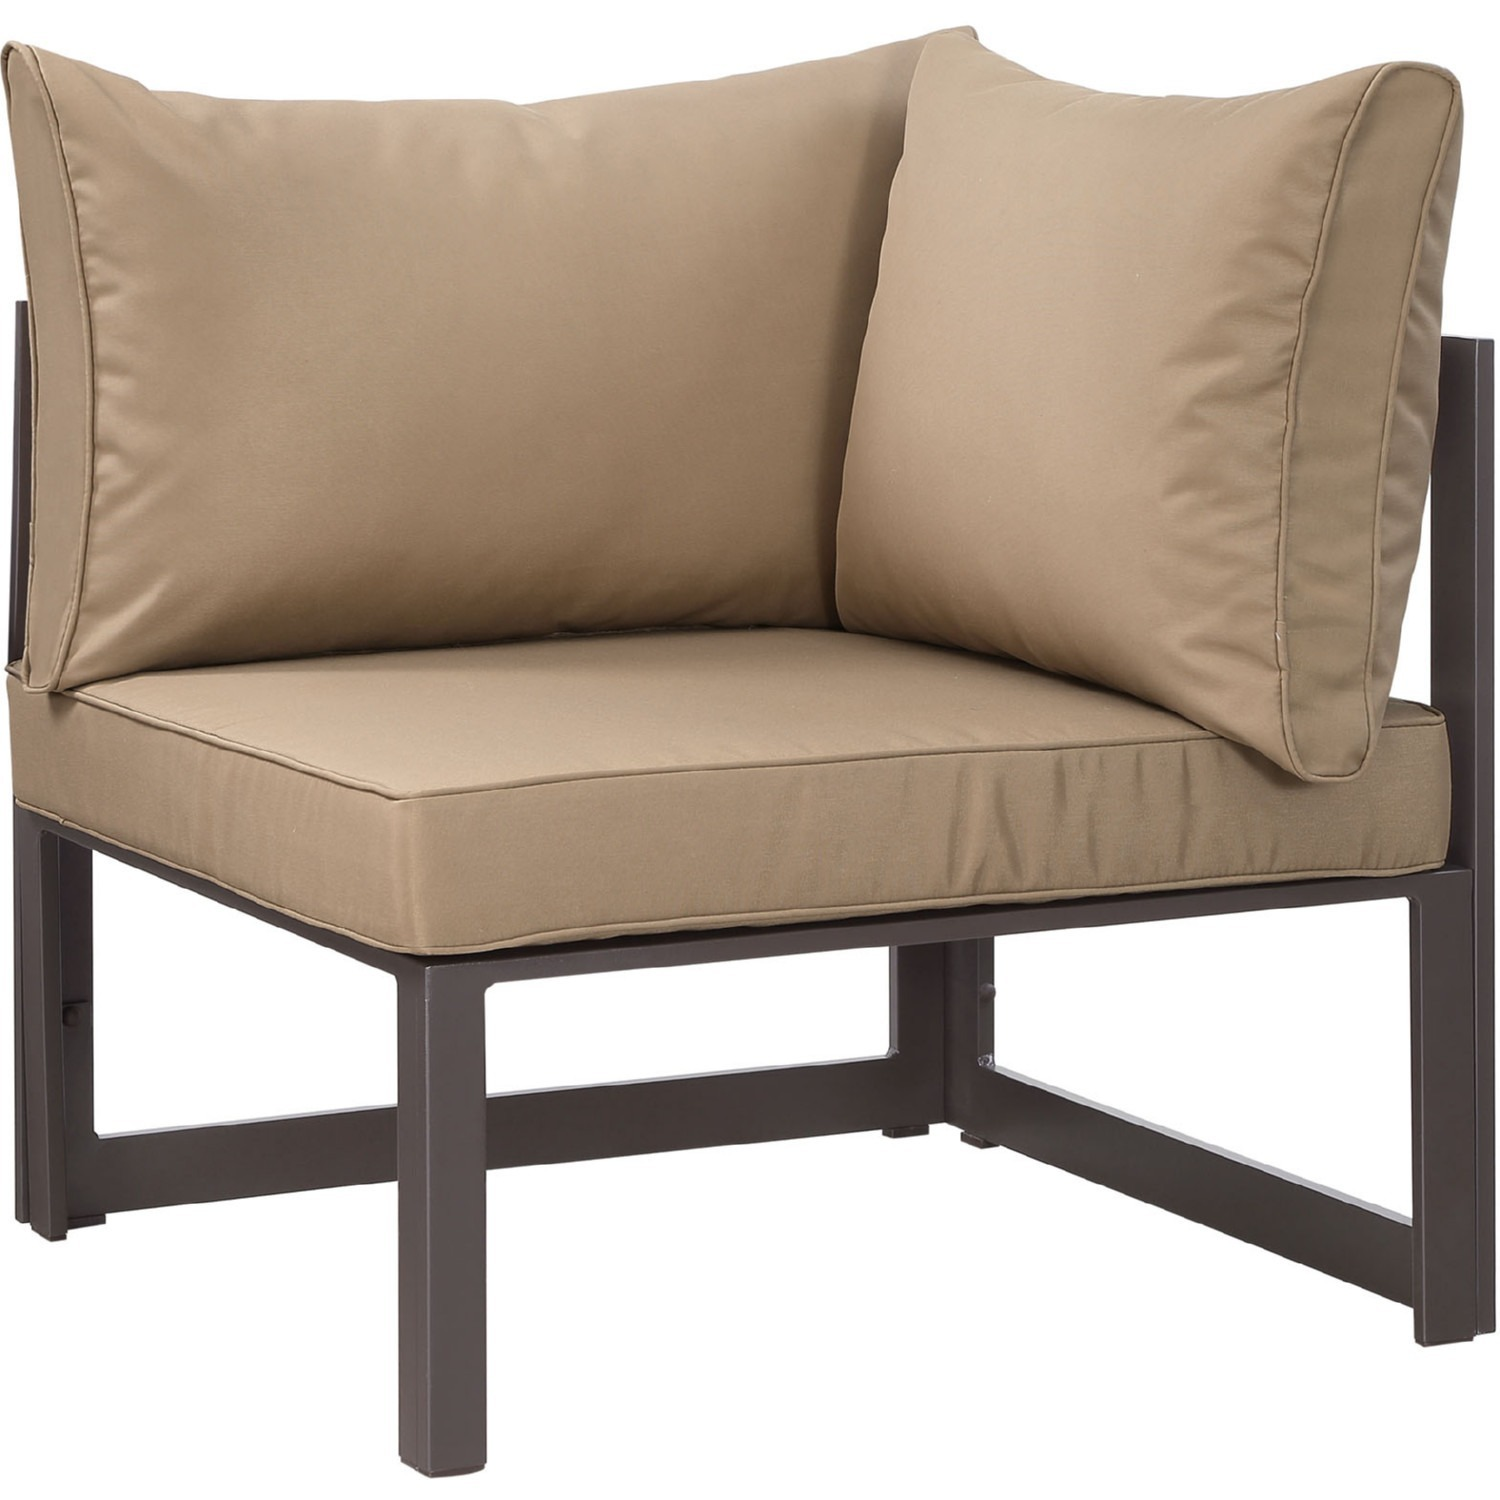 7-Piece Outdoor Sectional In Mocha & Brown Finish - image-3